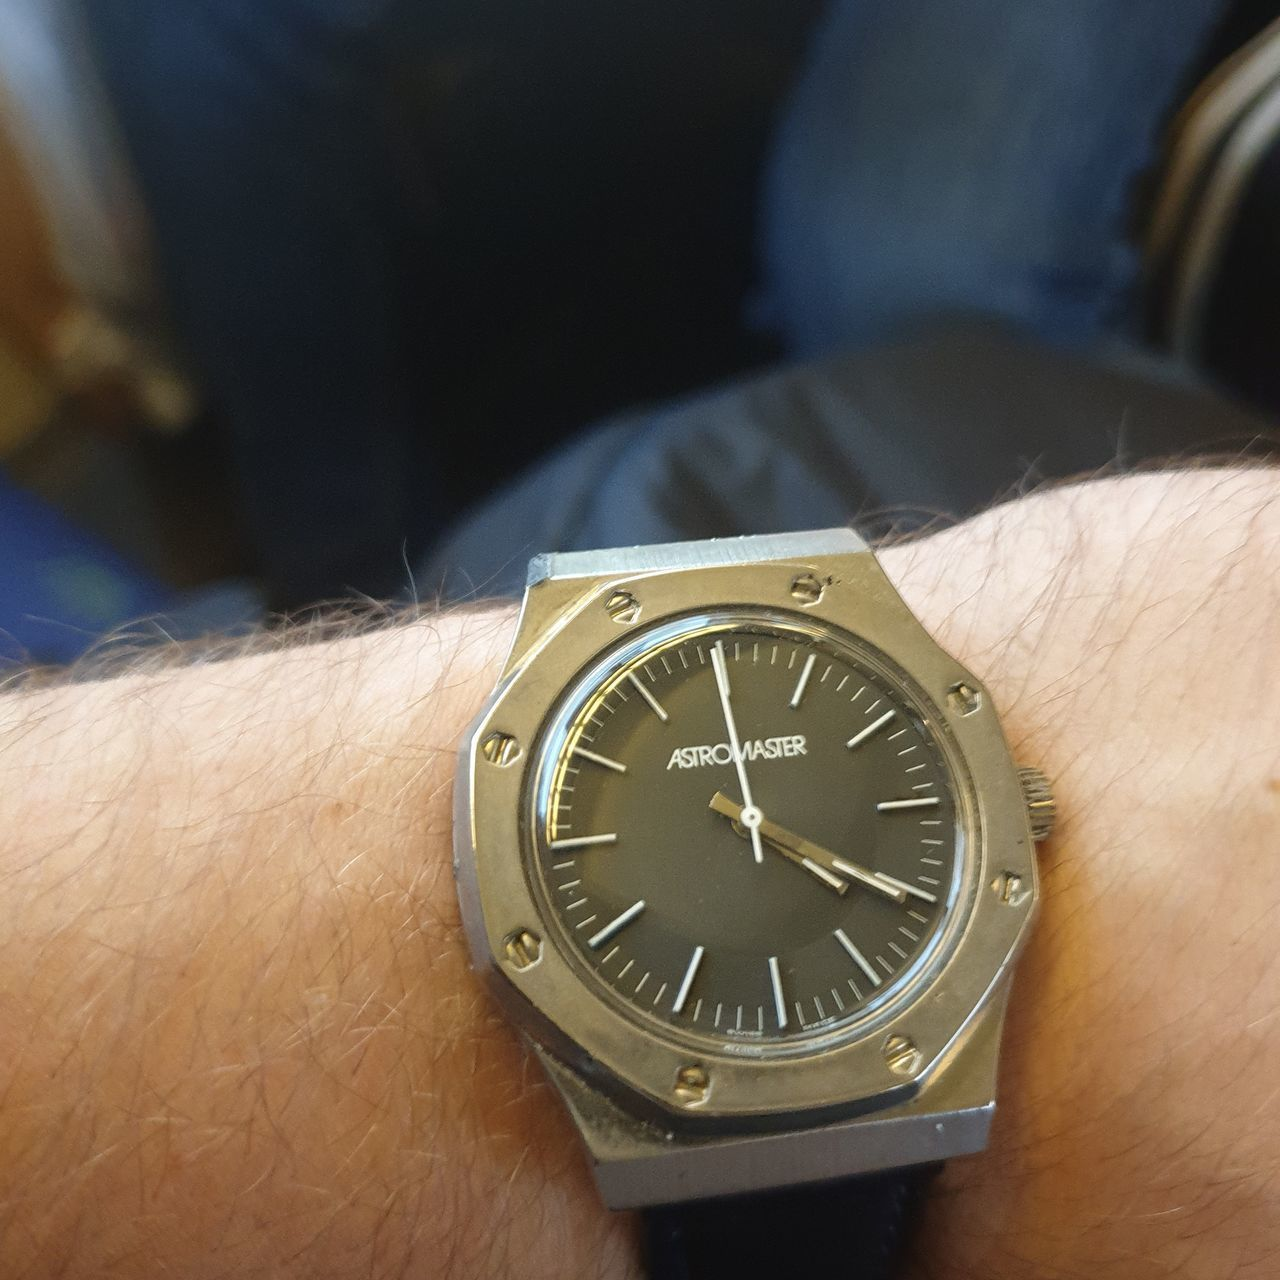 time, watch, wristwatch, hand, human body part, human hand, real people, one person, close-up, body part, men, day, instrument of time, unrecognizable person, lifestyles, accuracy, clock, focus on foreground, metal, personal accessory, wrist, finger, luxury